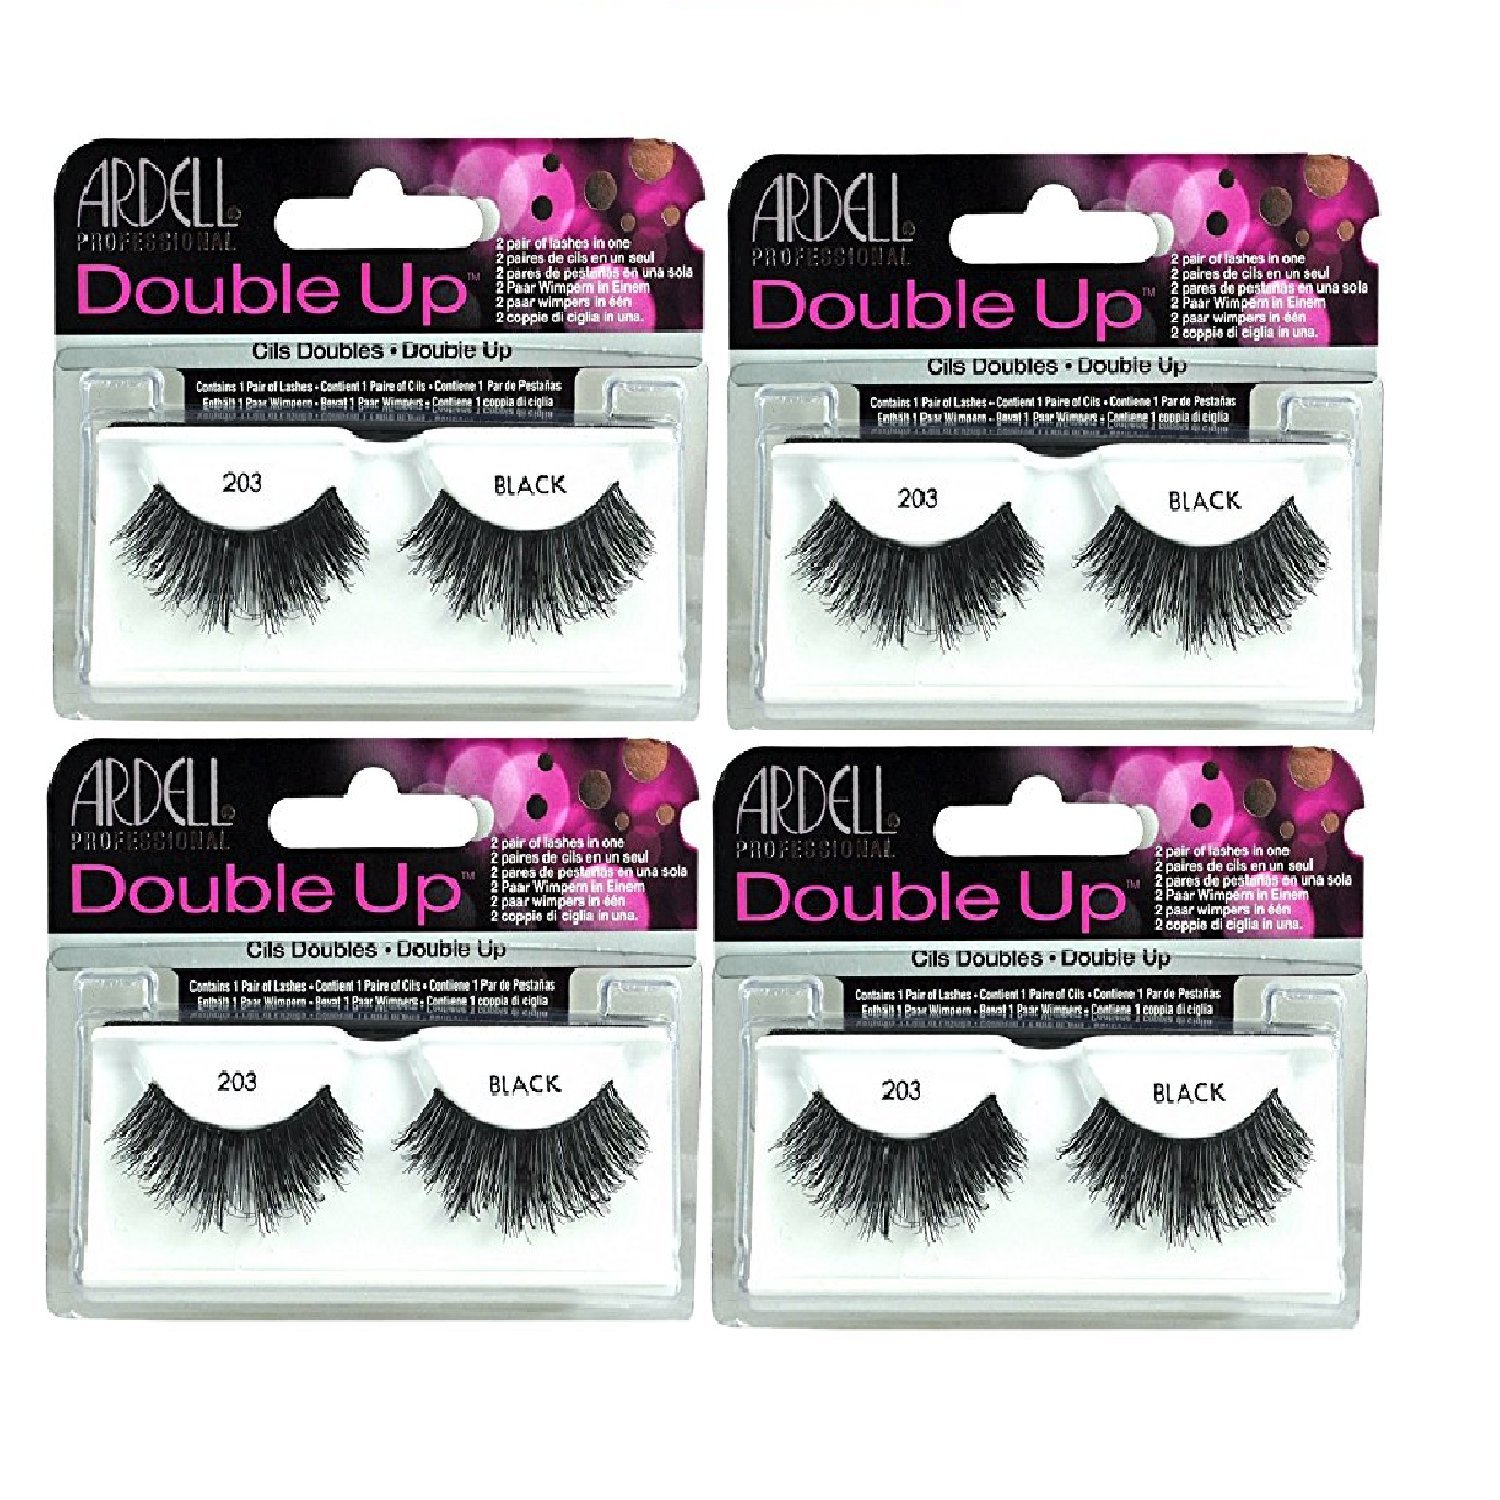 edc8cde80fd Amazon.com: Ardell - Double Up #203 False Eyelashes, Black reusable  (4-Pack): Health & Personal Care